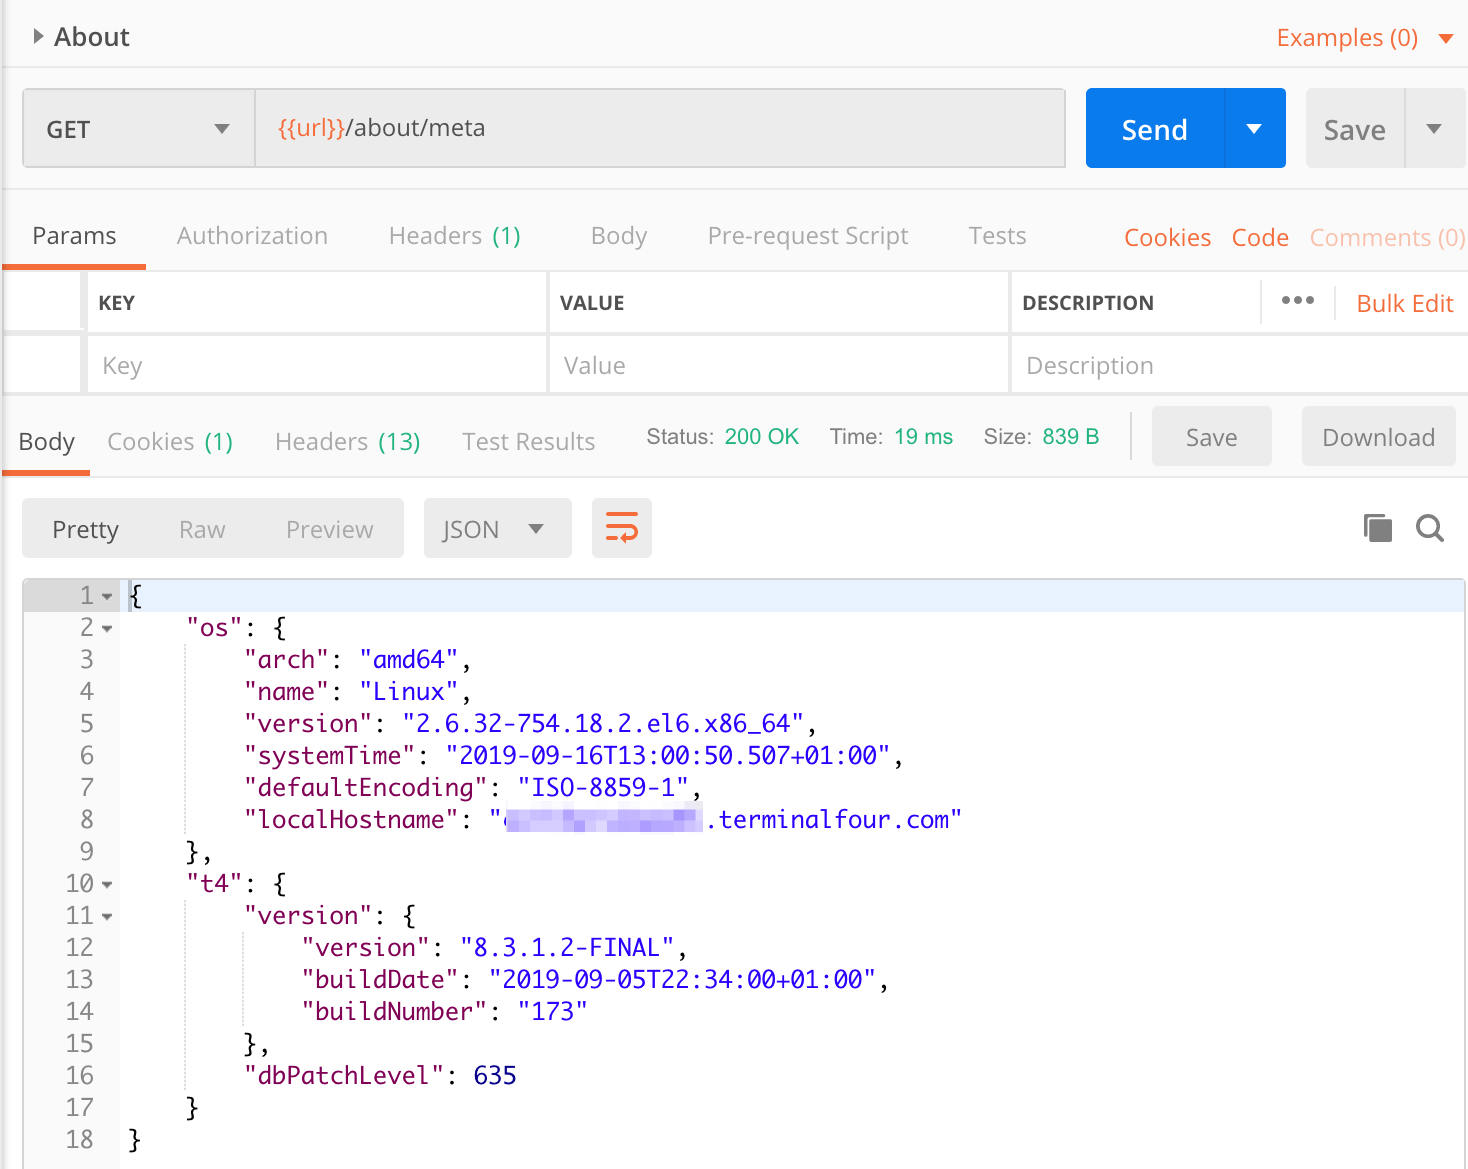 Screenshot of the /about/meta API output in Postman